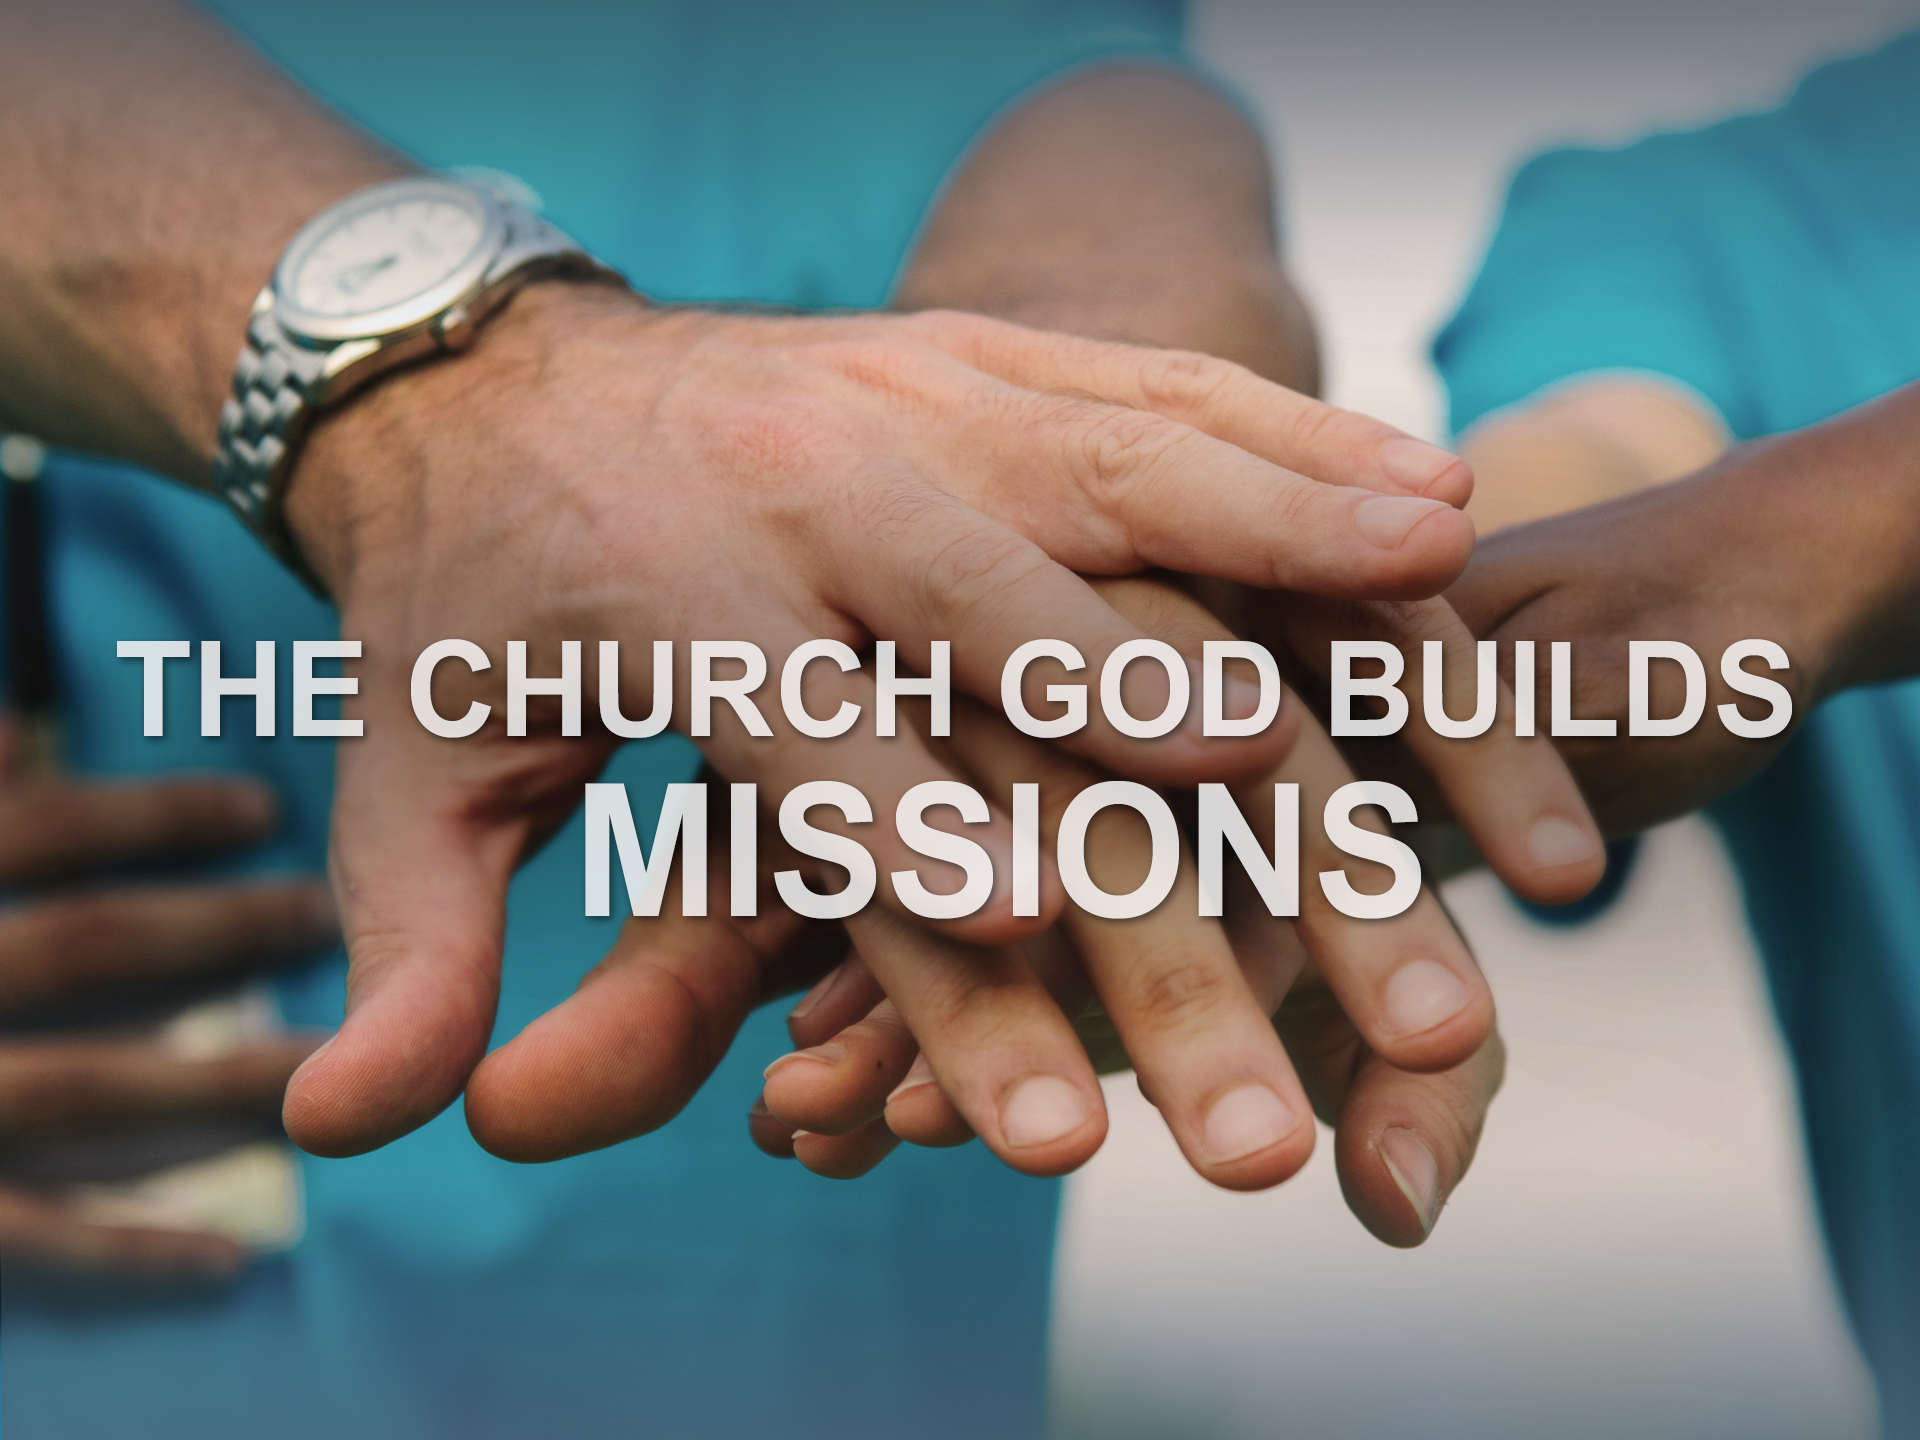 022419 The Church God Builds- Missions.png